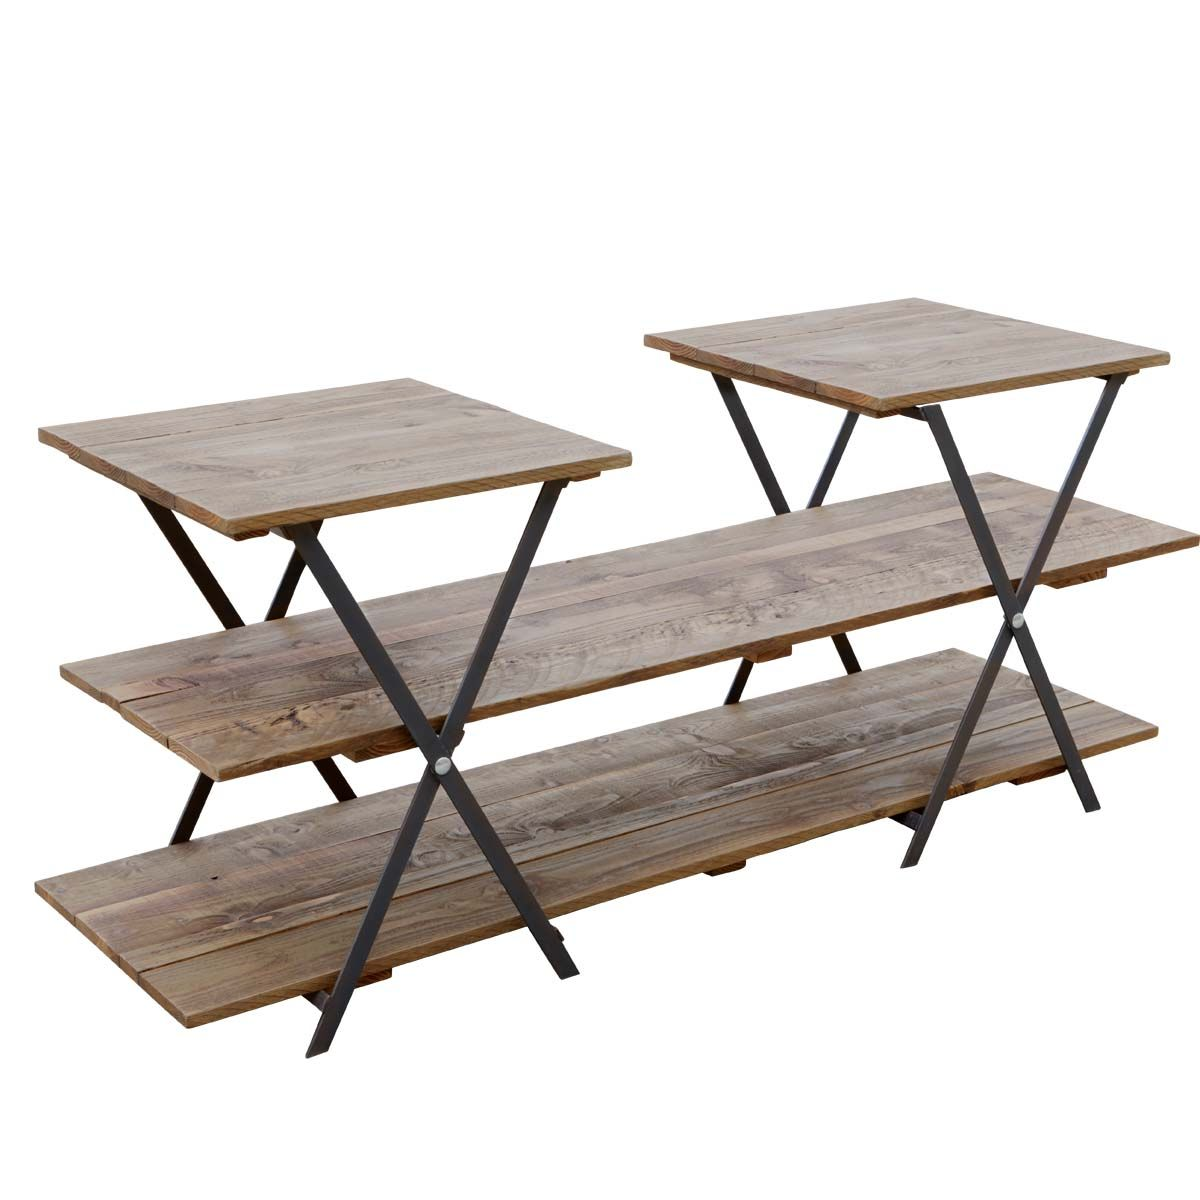 Retail Display Wooden Table With Mulitple Levels | Trestle Table With  Wooden Top